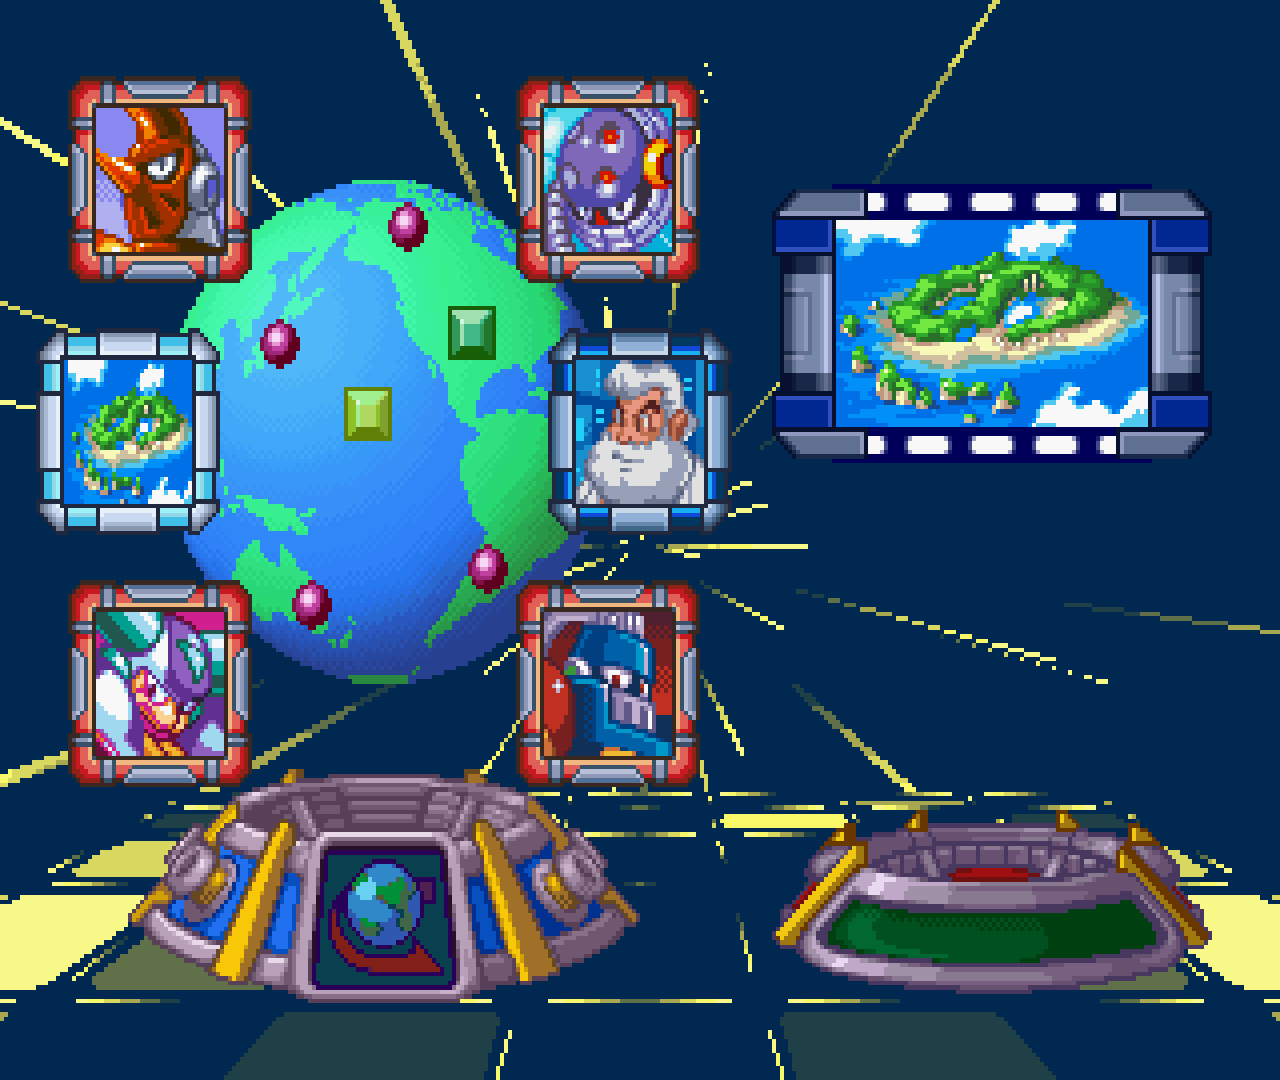 Figure 7 - The level select menu in Mega Man 8